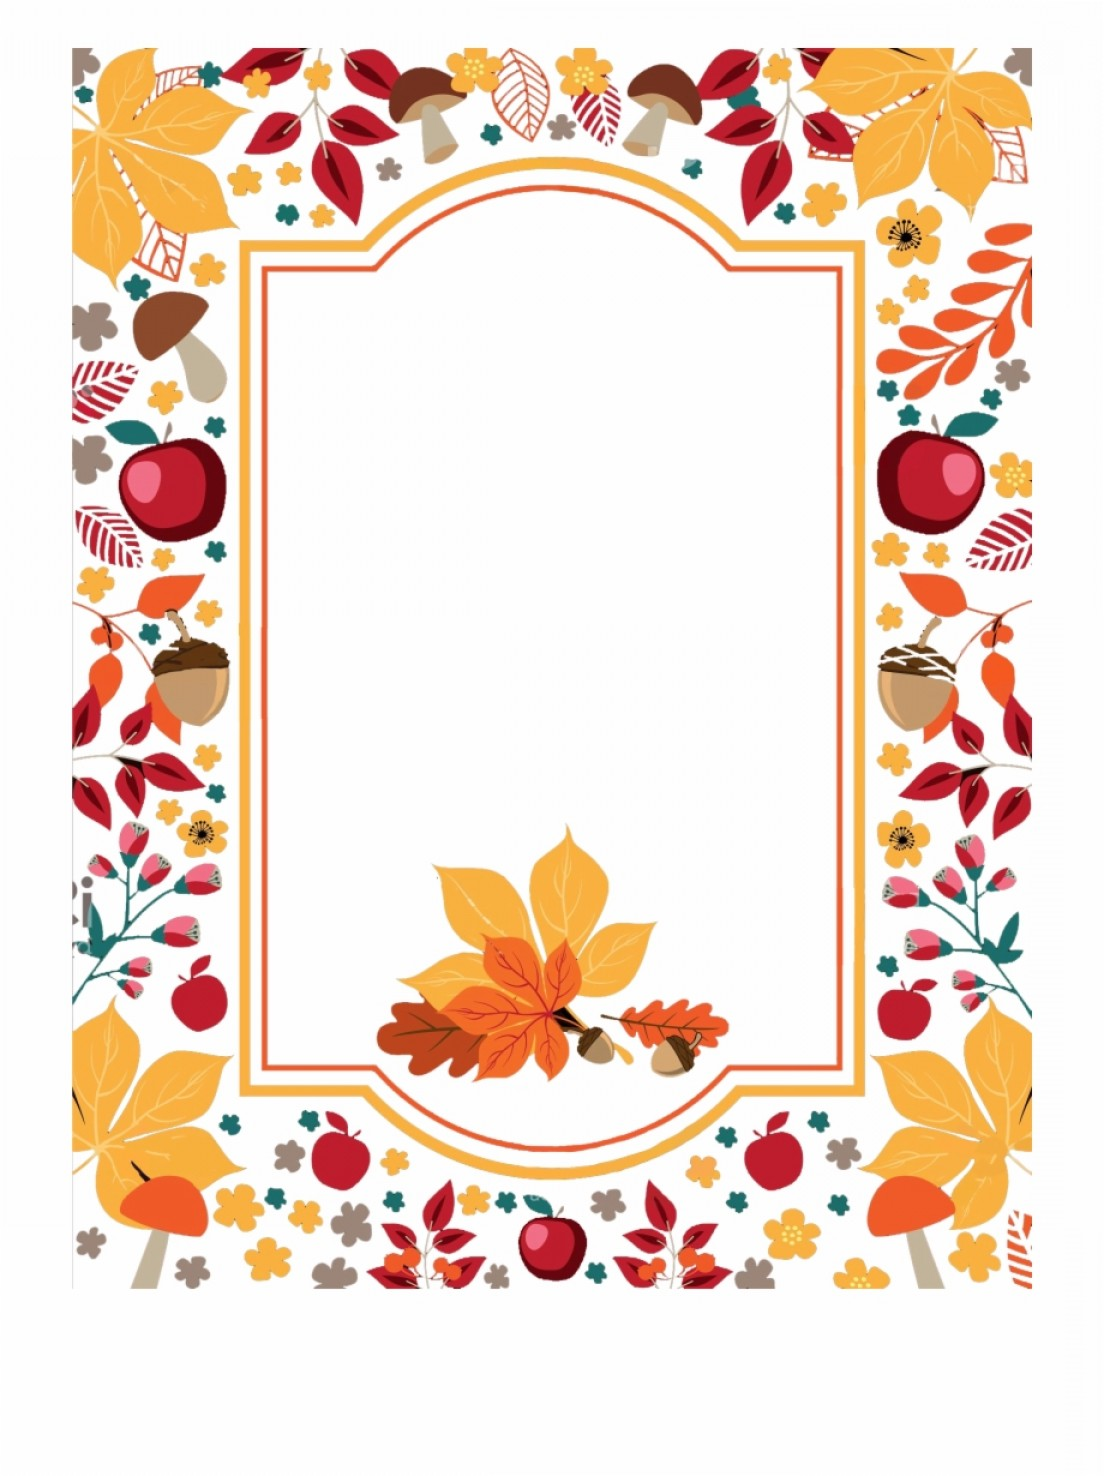 Thanksgiving Border Vector: Thhjihfree Thanksgiving Flowers Border Png Vector Clipart Transparent